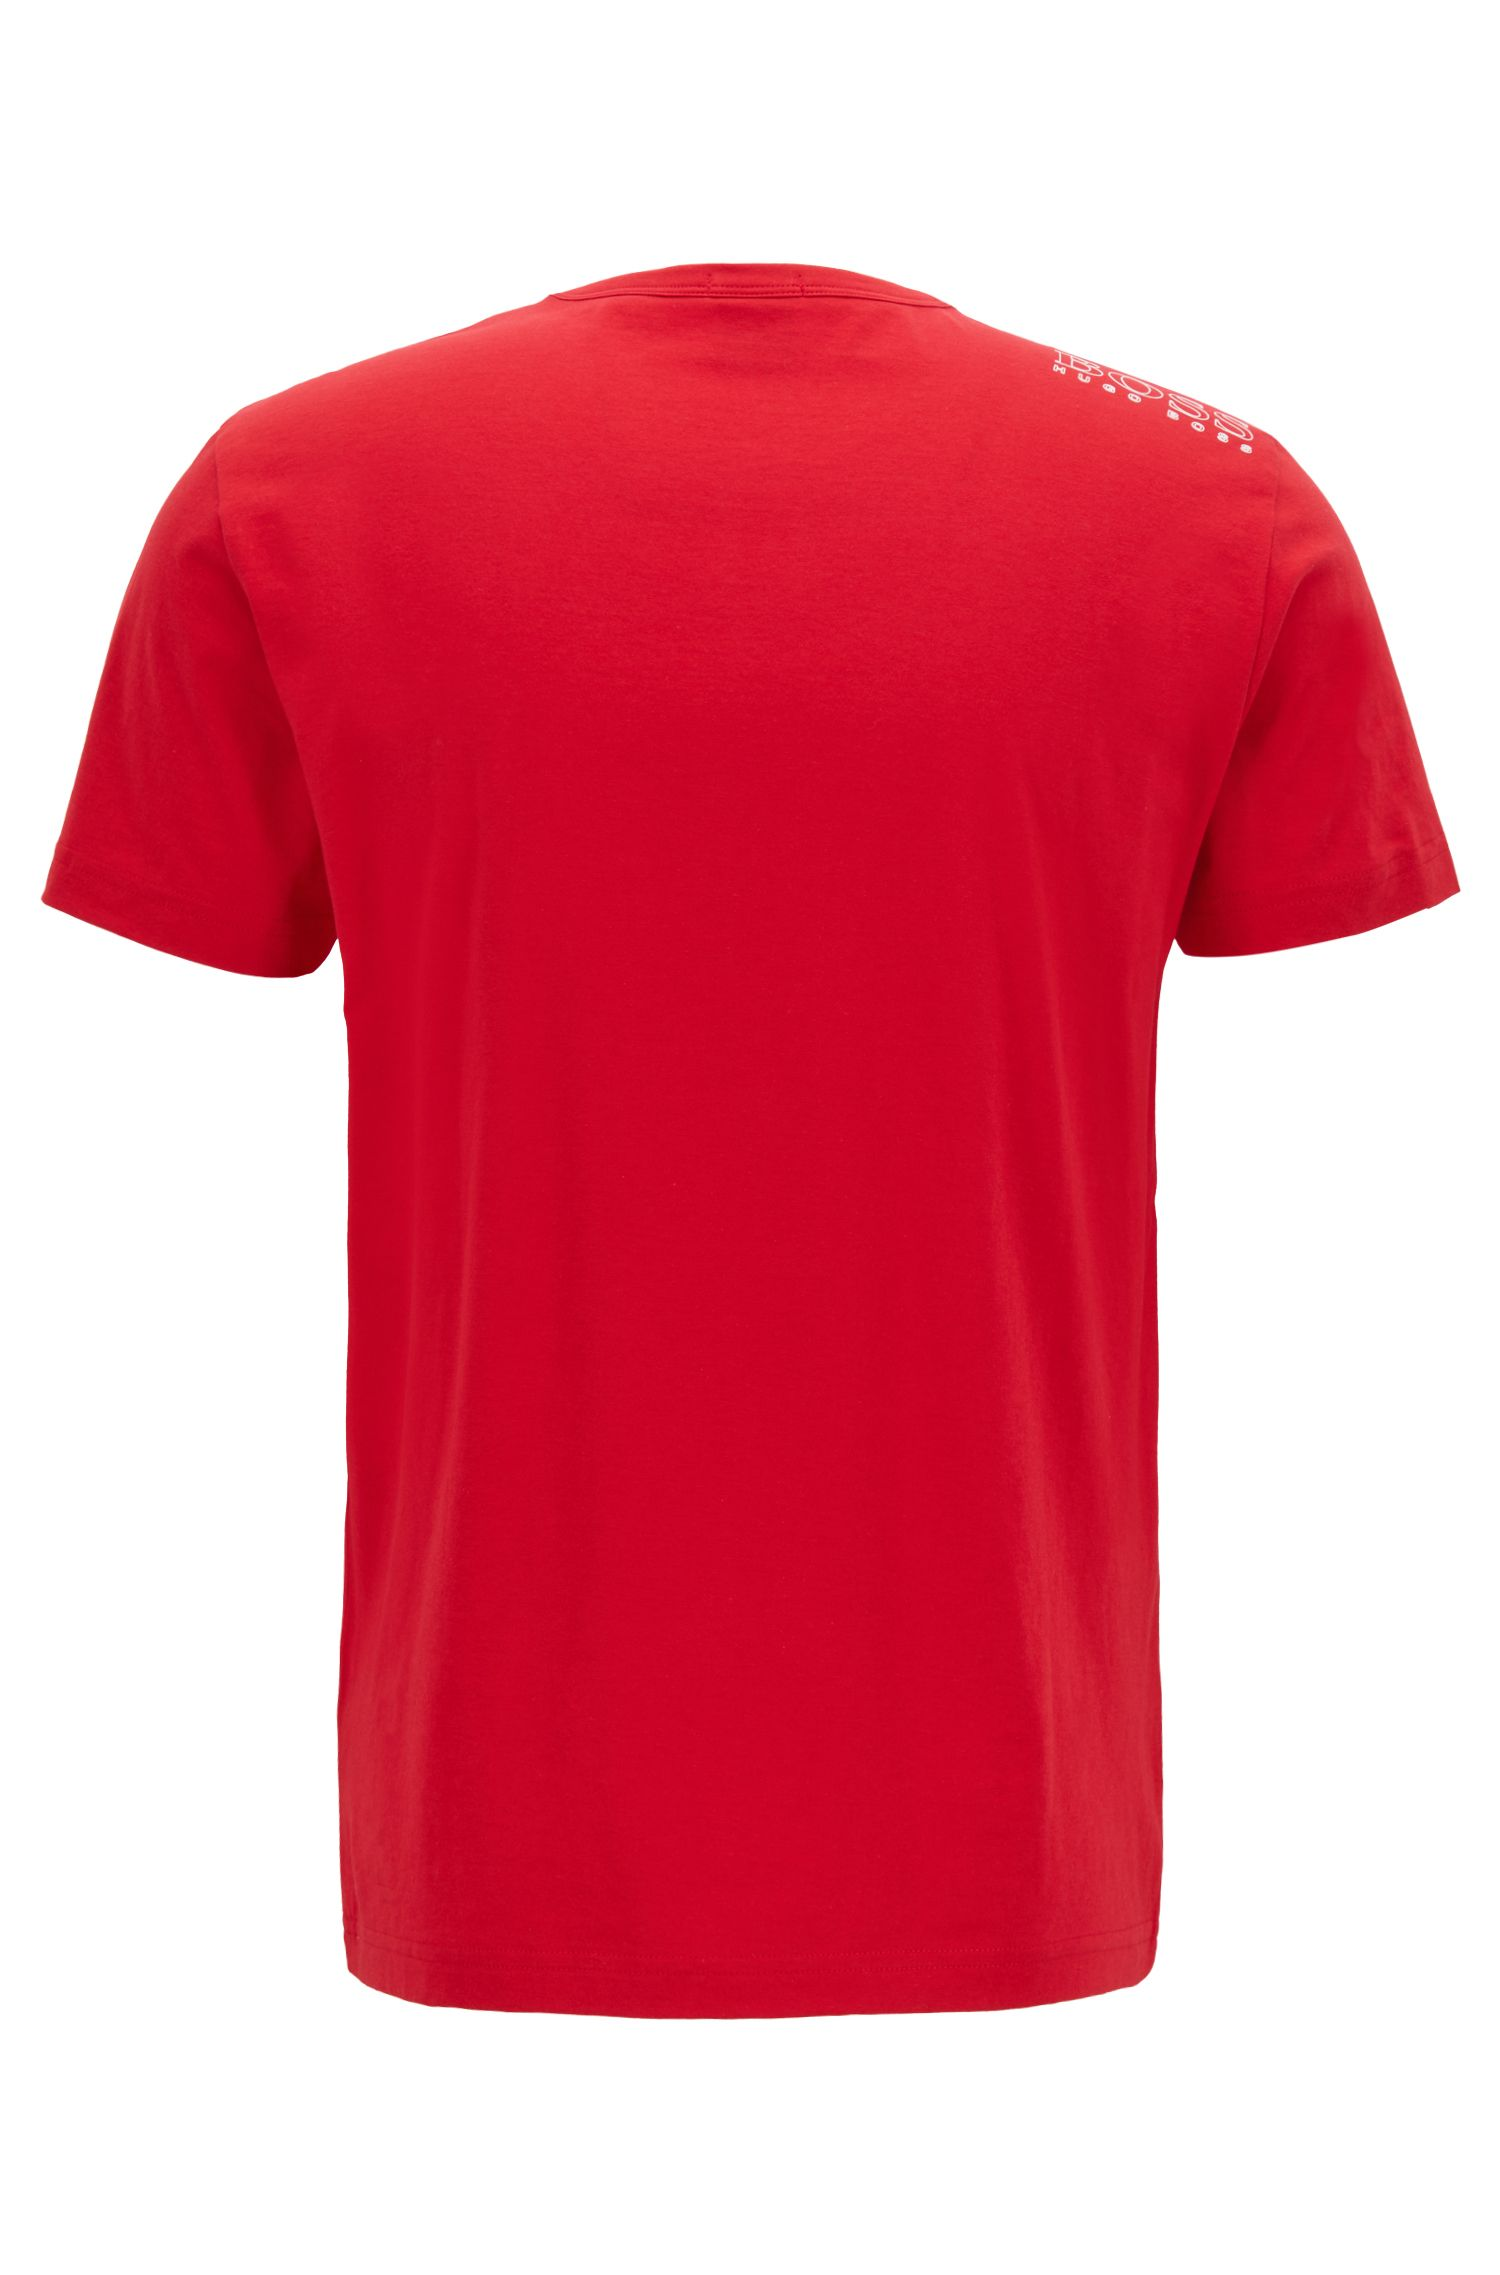 Crew-neck jersey T-shirt with rubber shoulder print, Red